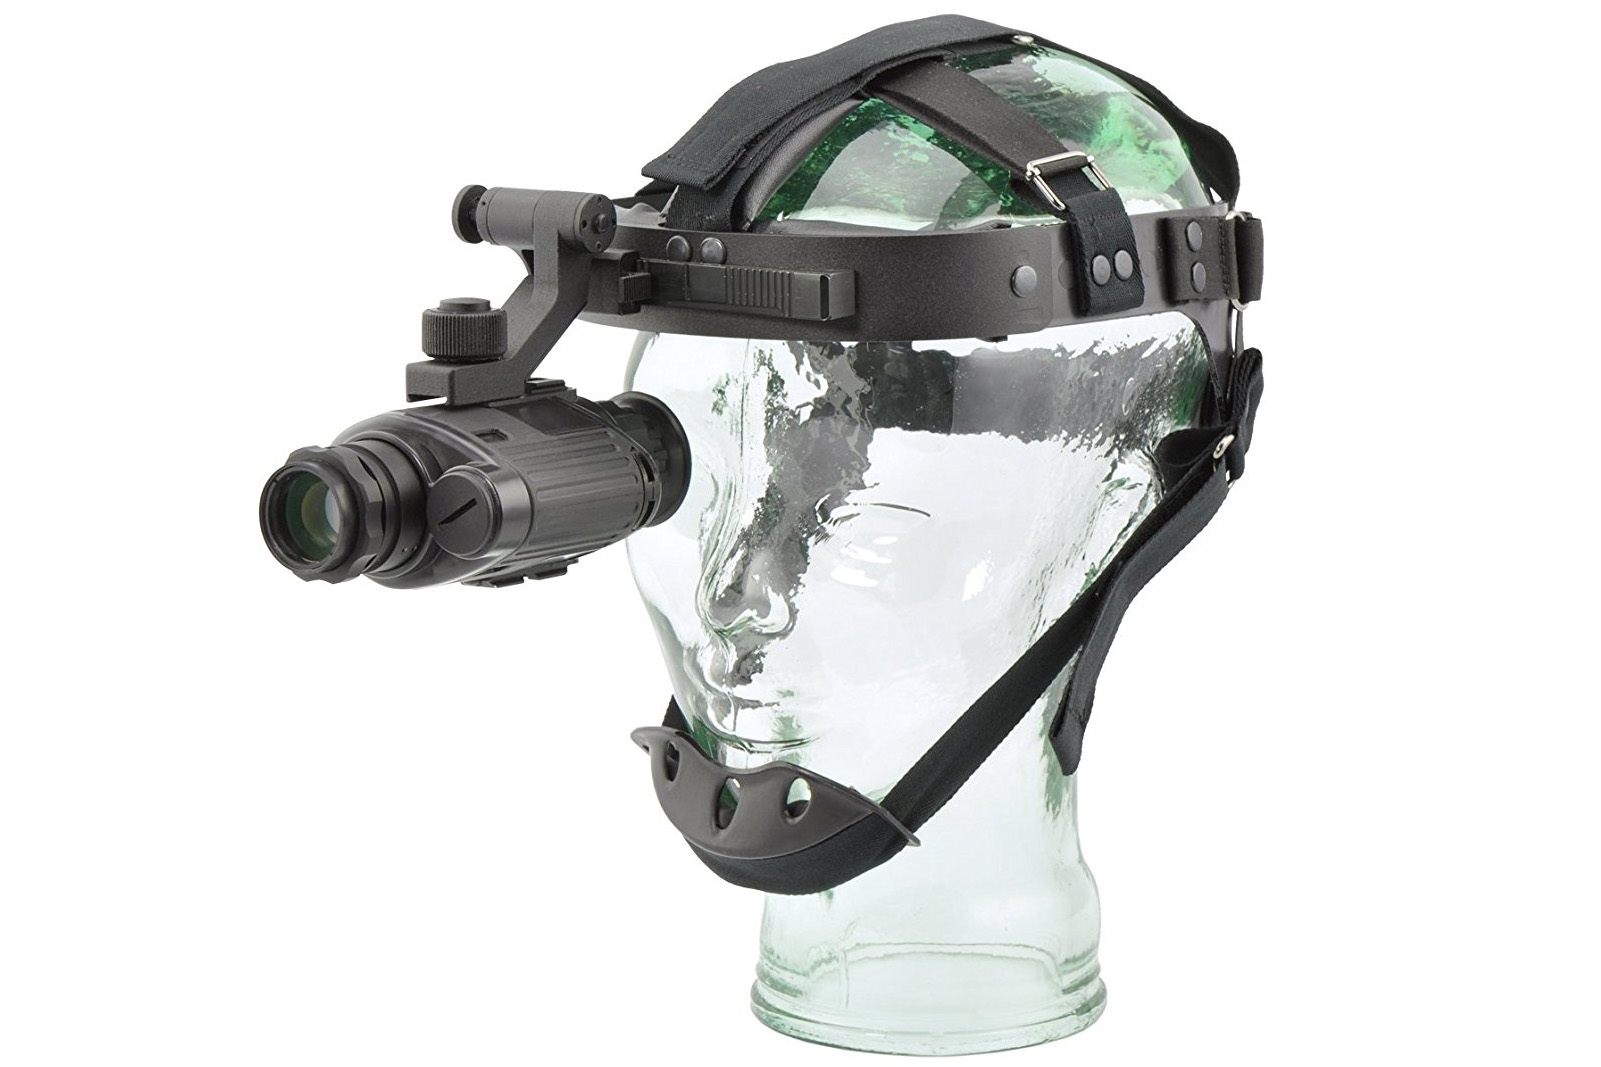 Budget wearable night vision